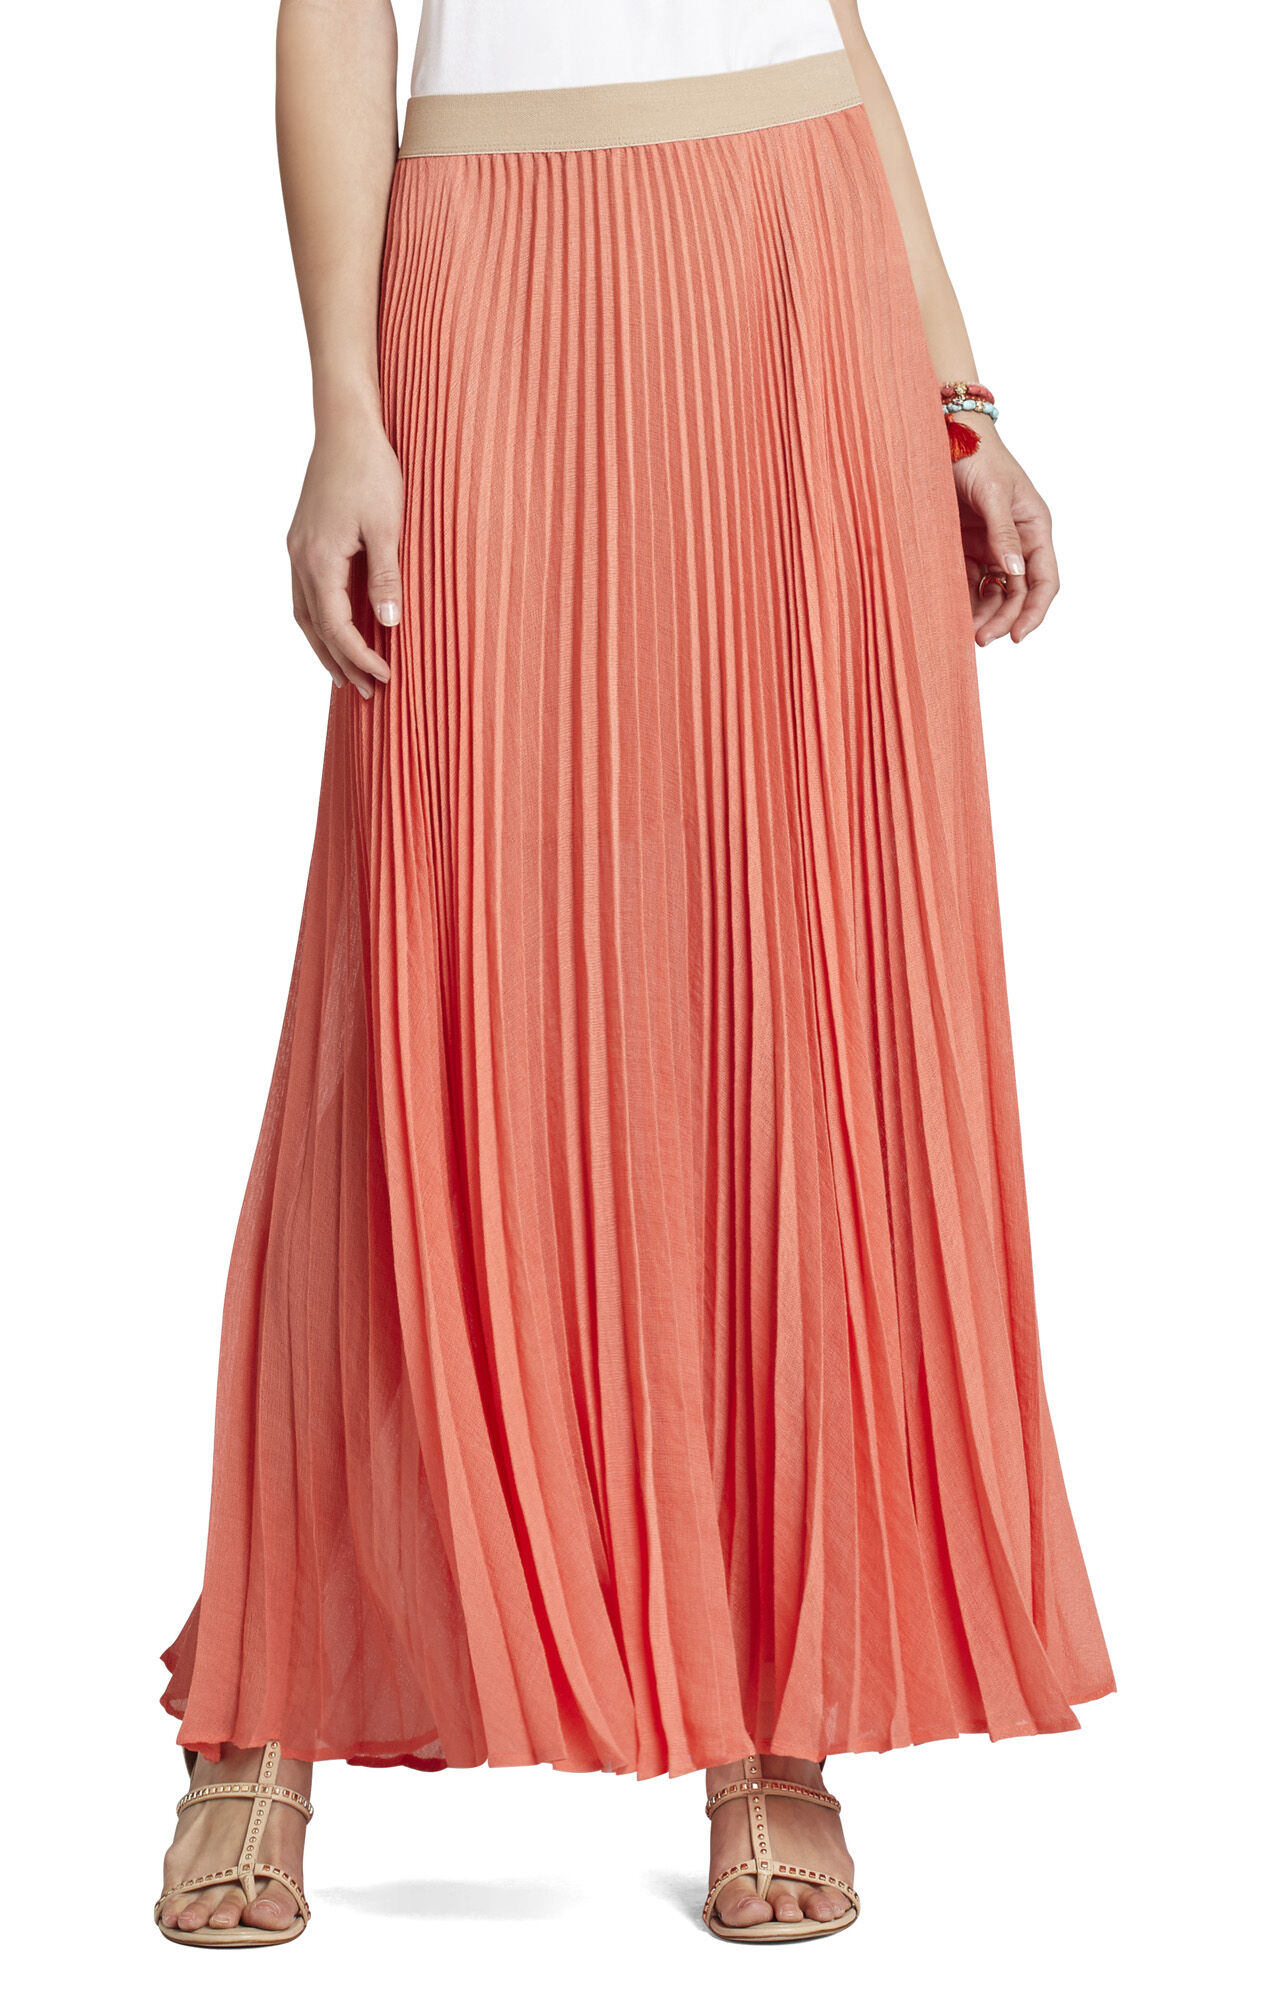 esten sunburst pleated maxi skirt